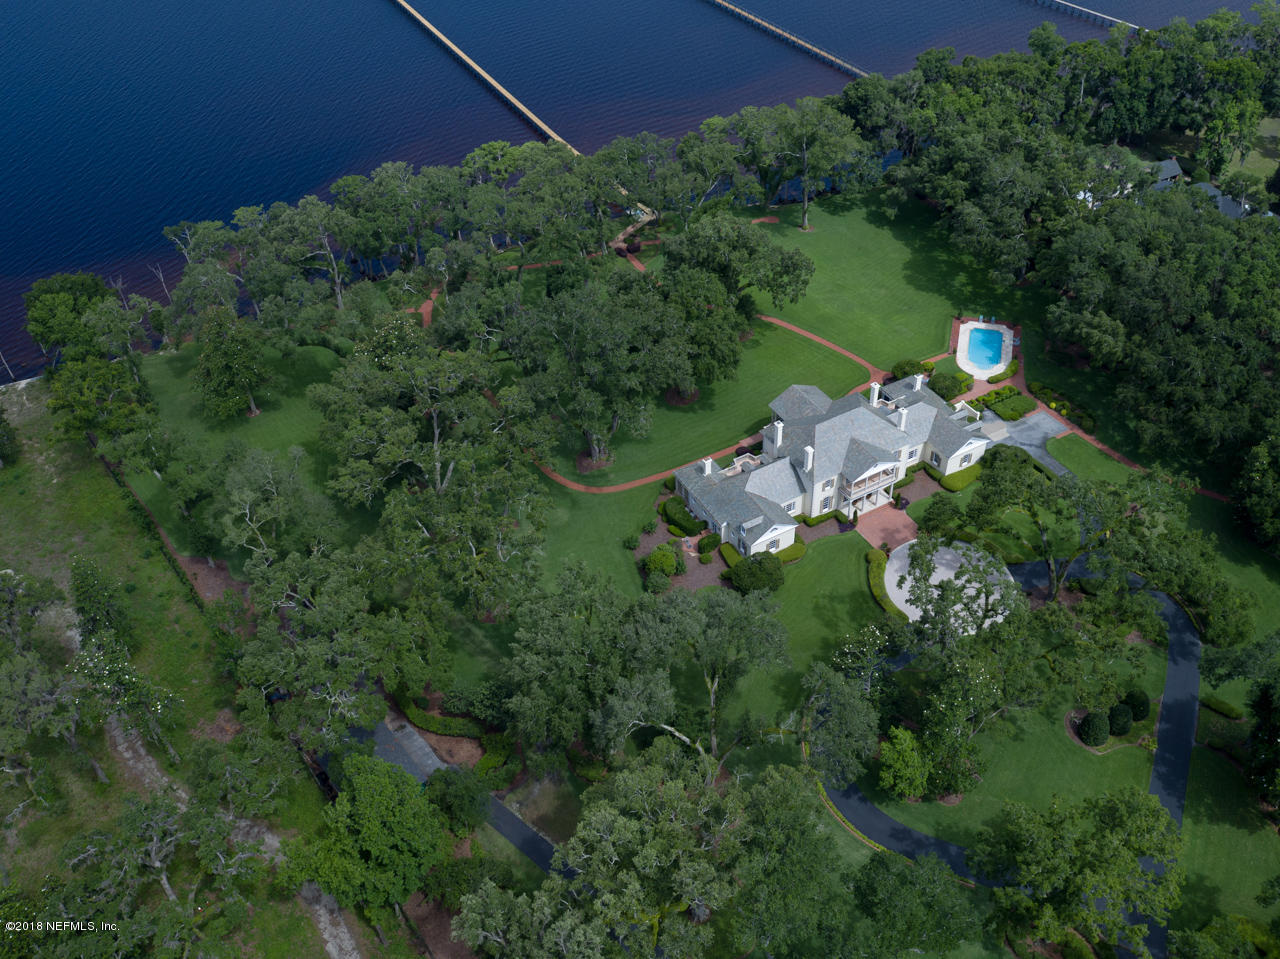 2180 EVENTIDE, ST JOHNS, FLORIDA 32259, 7 Bedrooms Bedrooms, ,8 BathroomsBathrooms,Residential - single family,For sale,EVENTIDE,949698